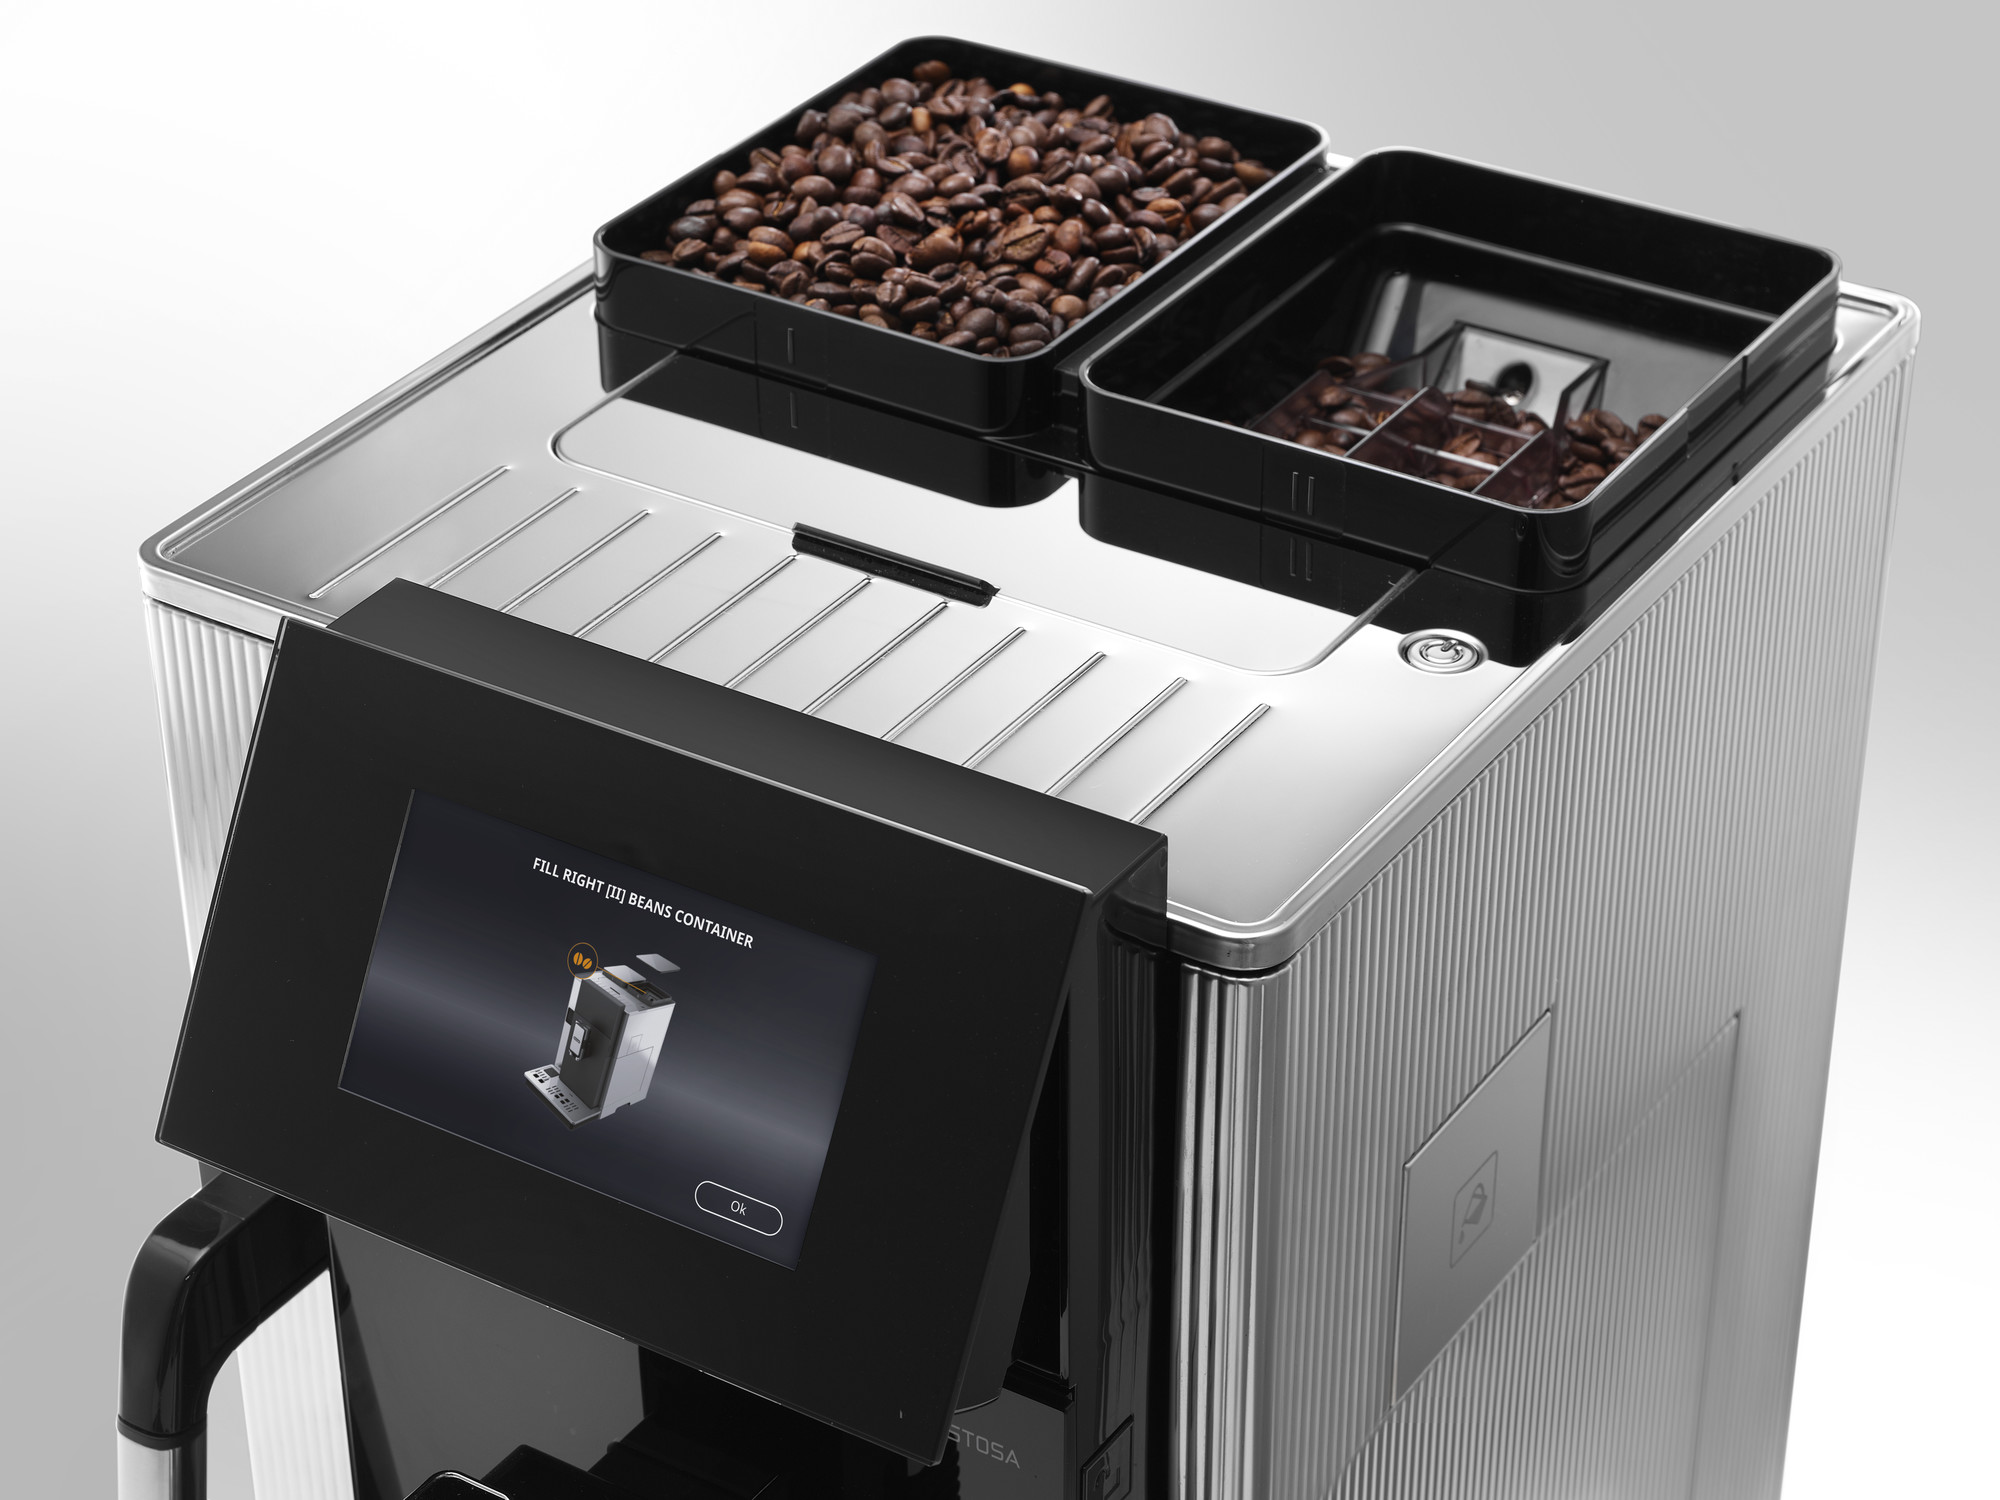 a top view of the De'Longhi Maestosa Coffee Machine and its bean hoppers